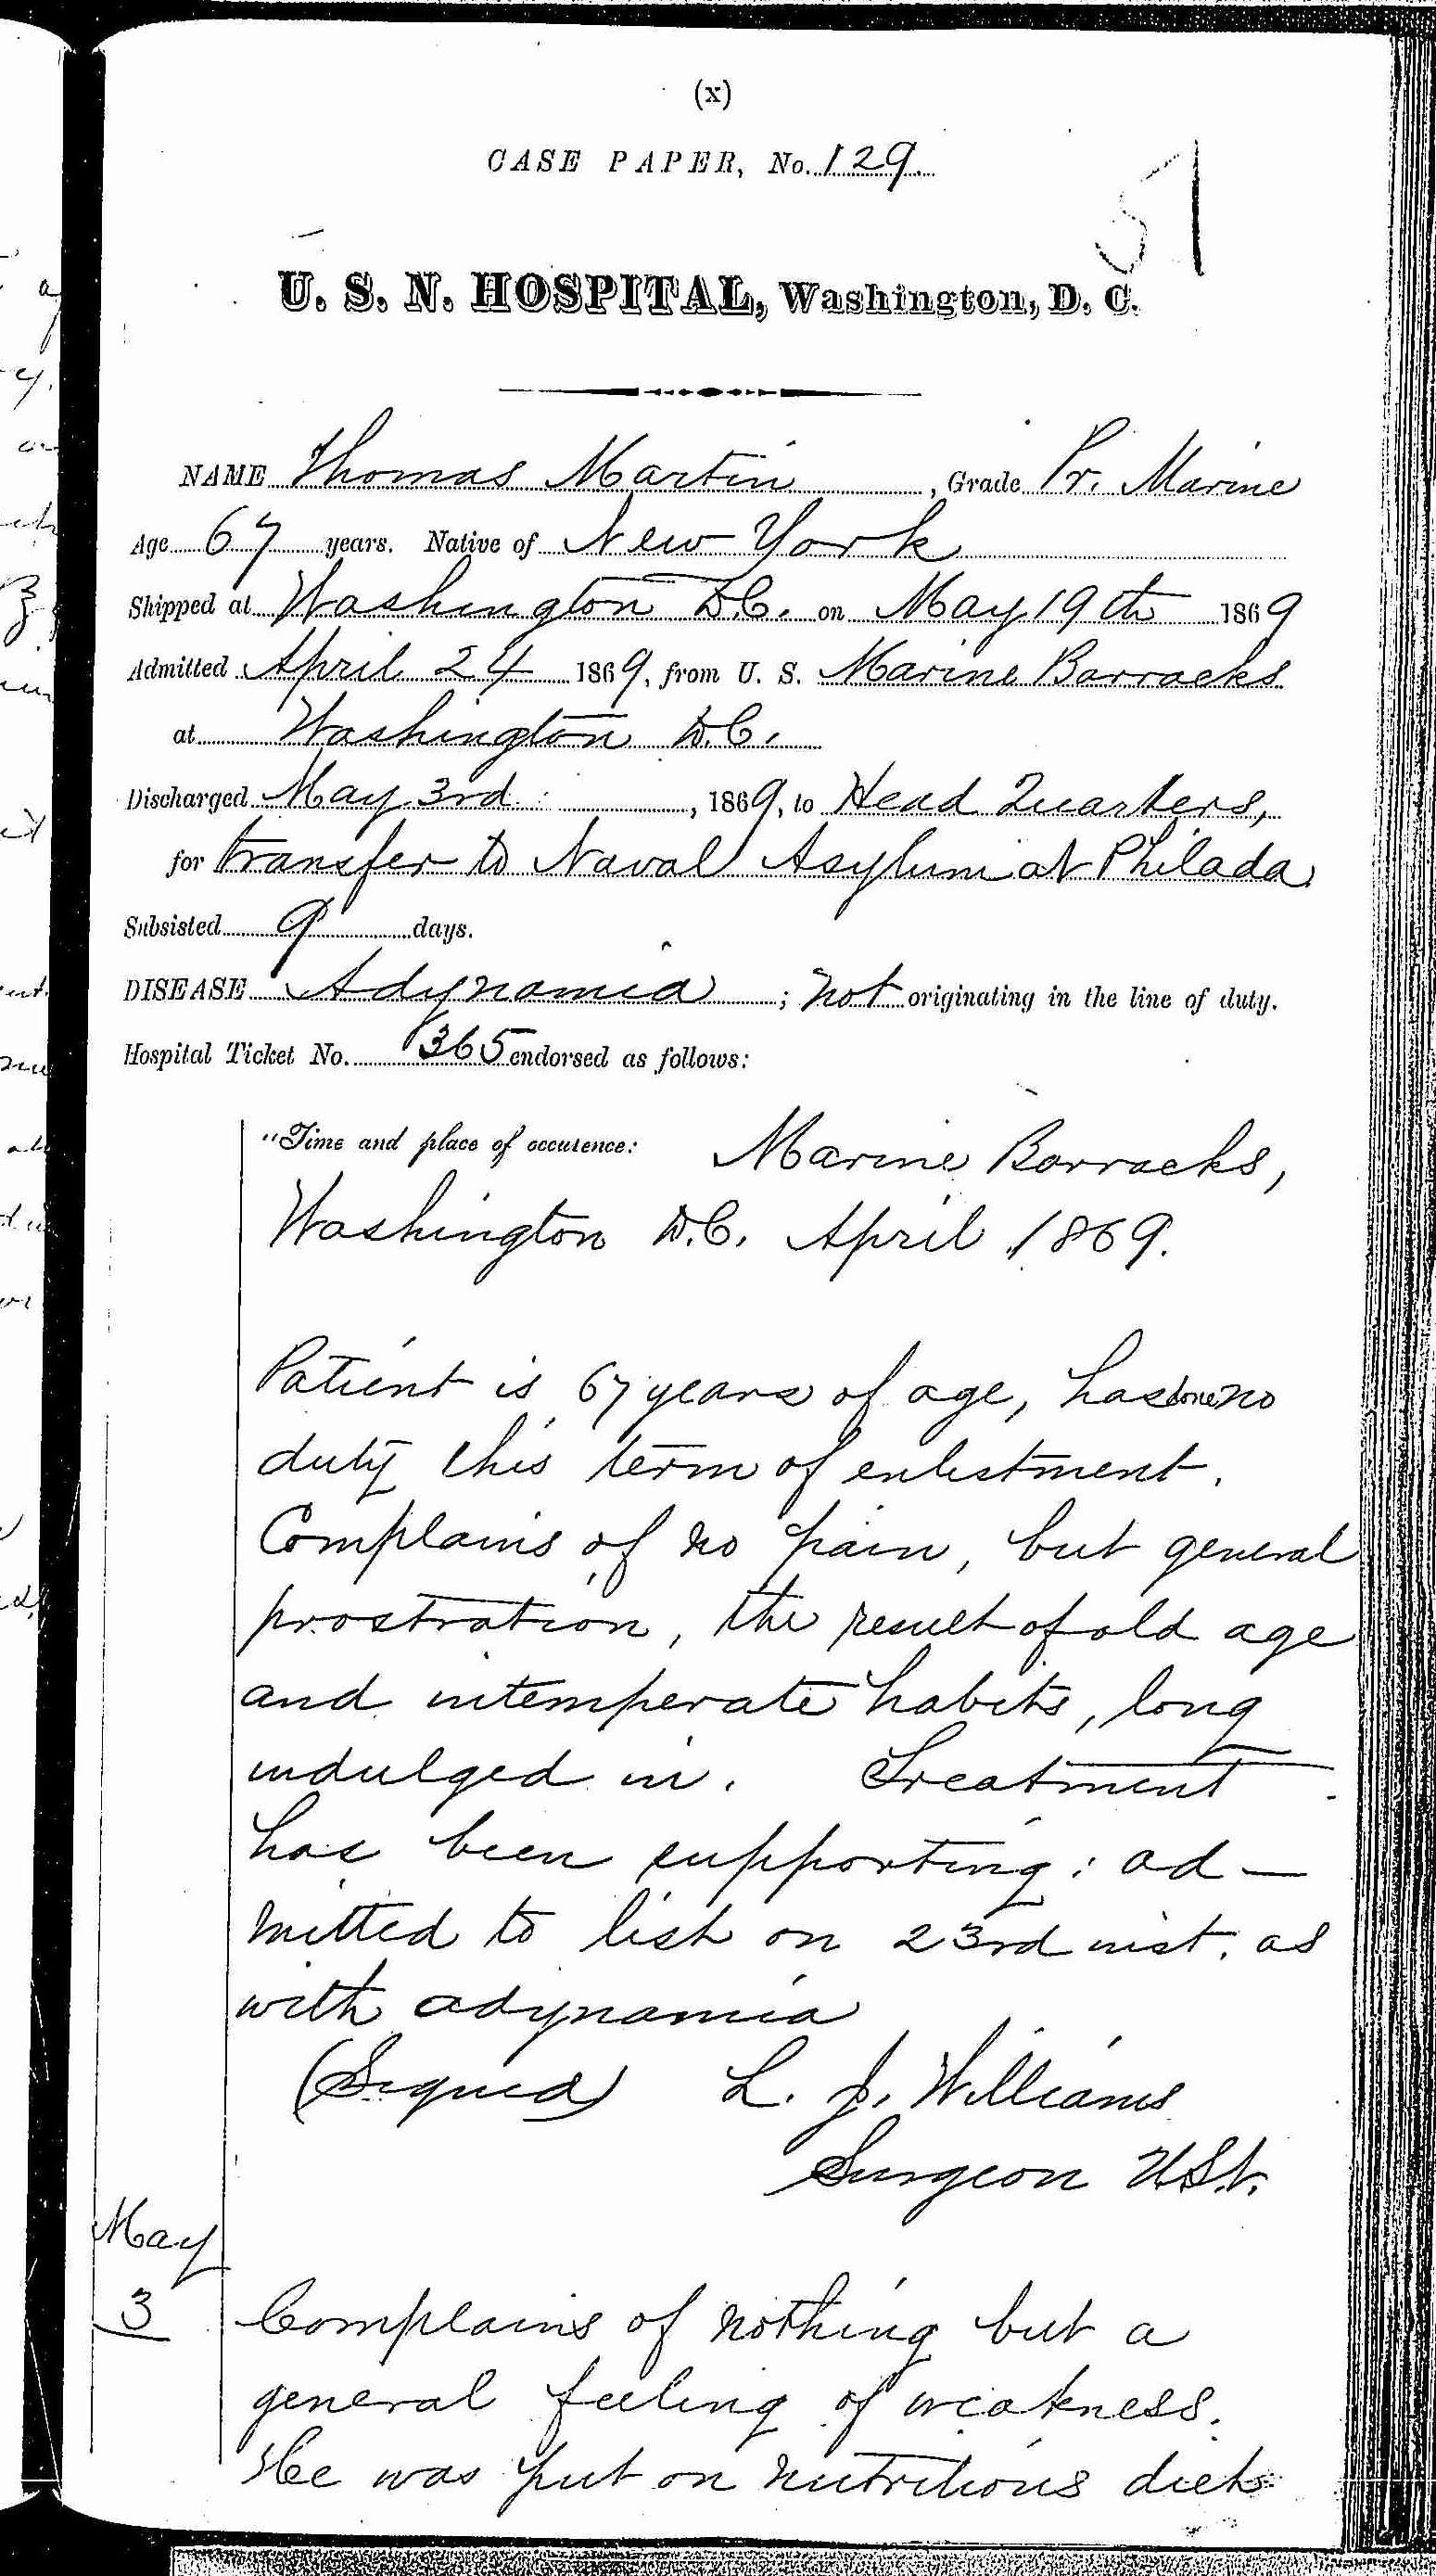 Entry for Thomas Martin (page 1 of 2) in the log Hospital Tickets and Case Papers - Naval Hospital - Washington, D.C. - 1868-69